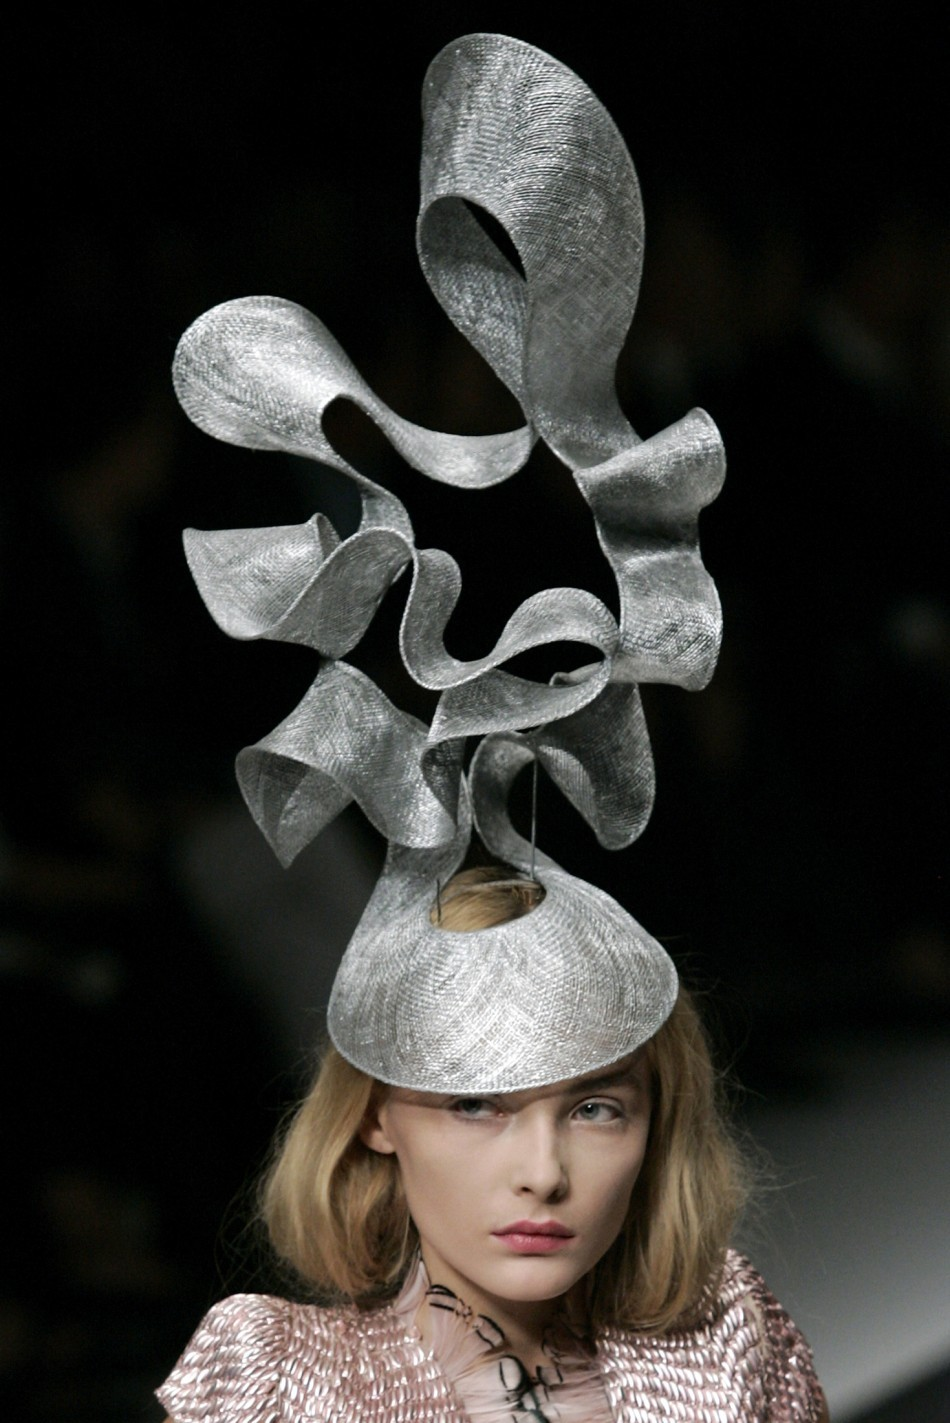 Snejana Onopka displaying a hat created by Philip Tracy for the Alexander McQueen S/S 2008 collection.